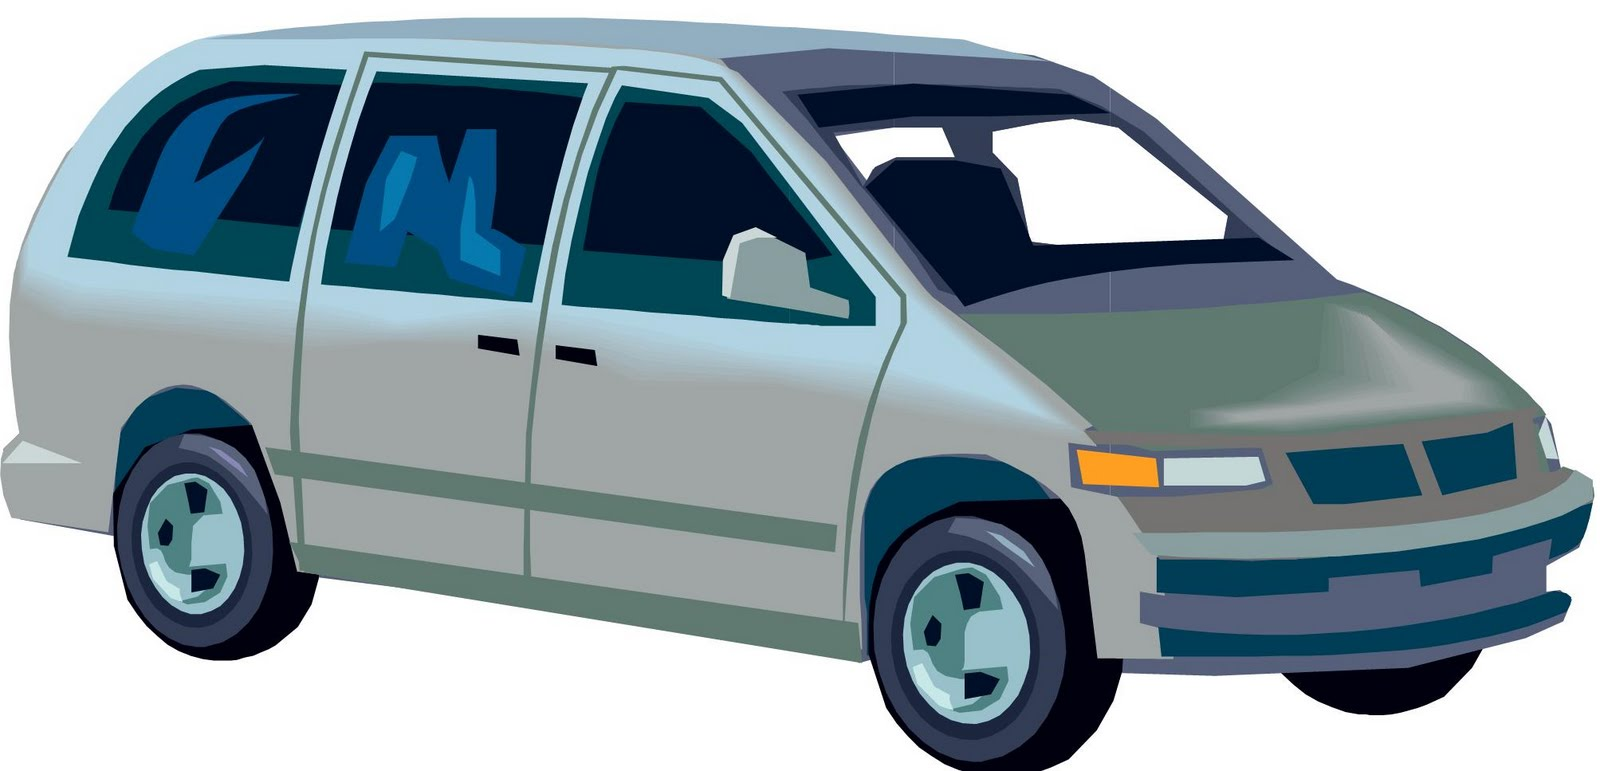 1600x771 Collection Of Dodge Minivan Clipart High Quality, Free